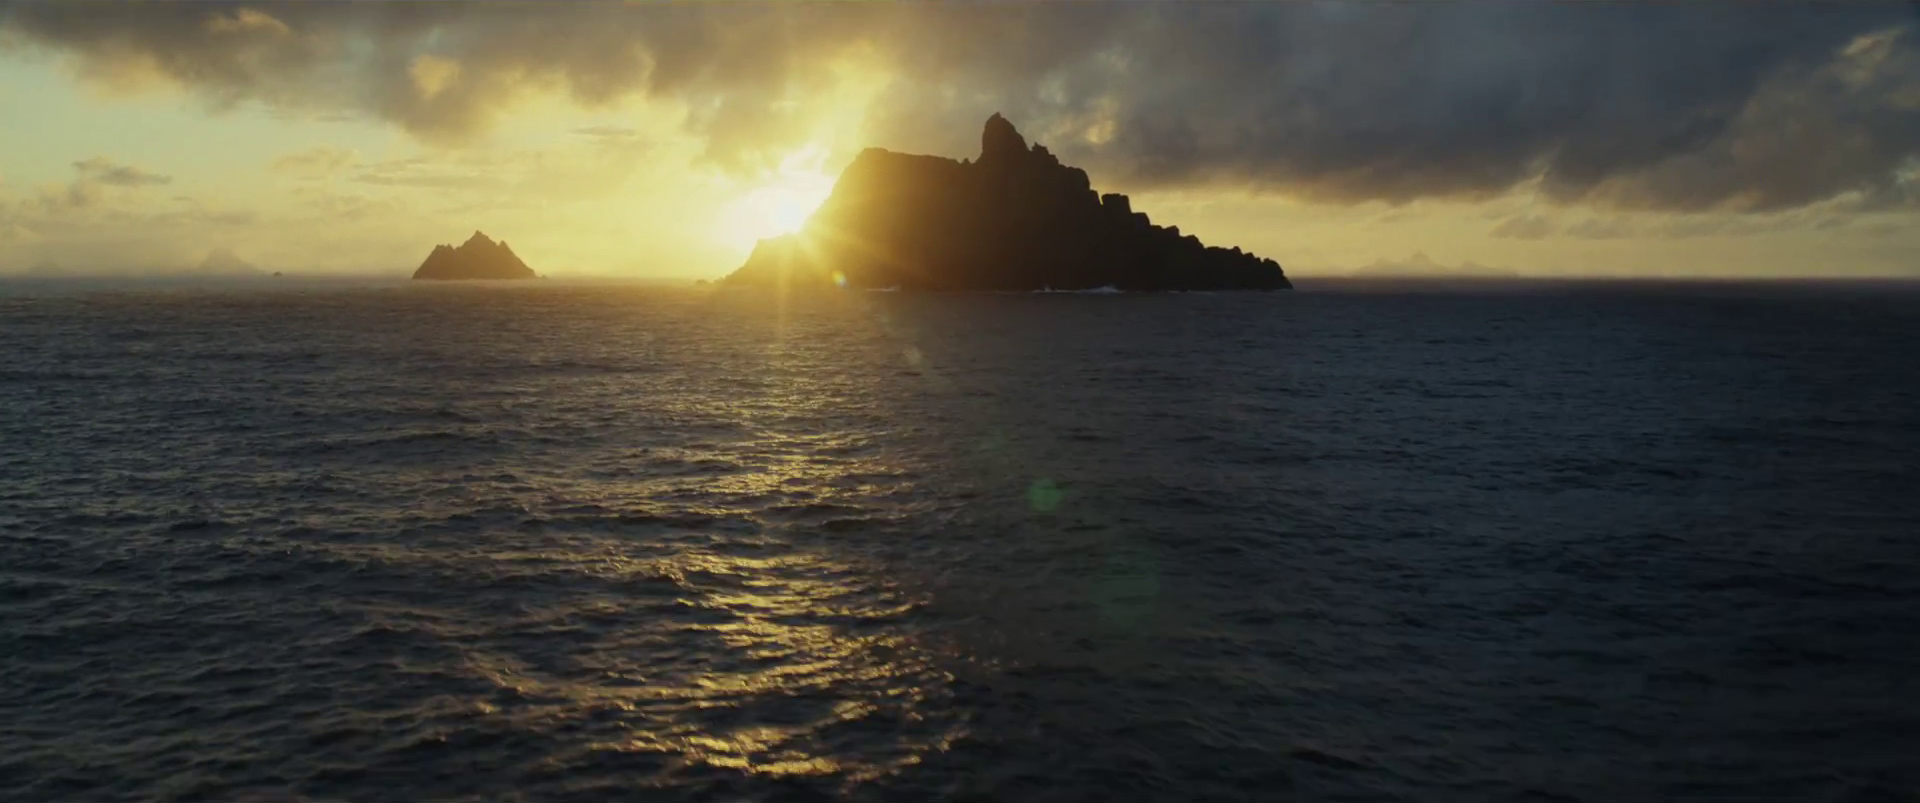 Star wars the last jedi trailer is absolutely beautiful - Star wars the last jedi wallpaper ...